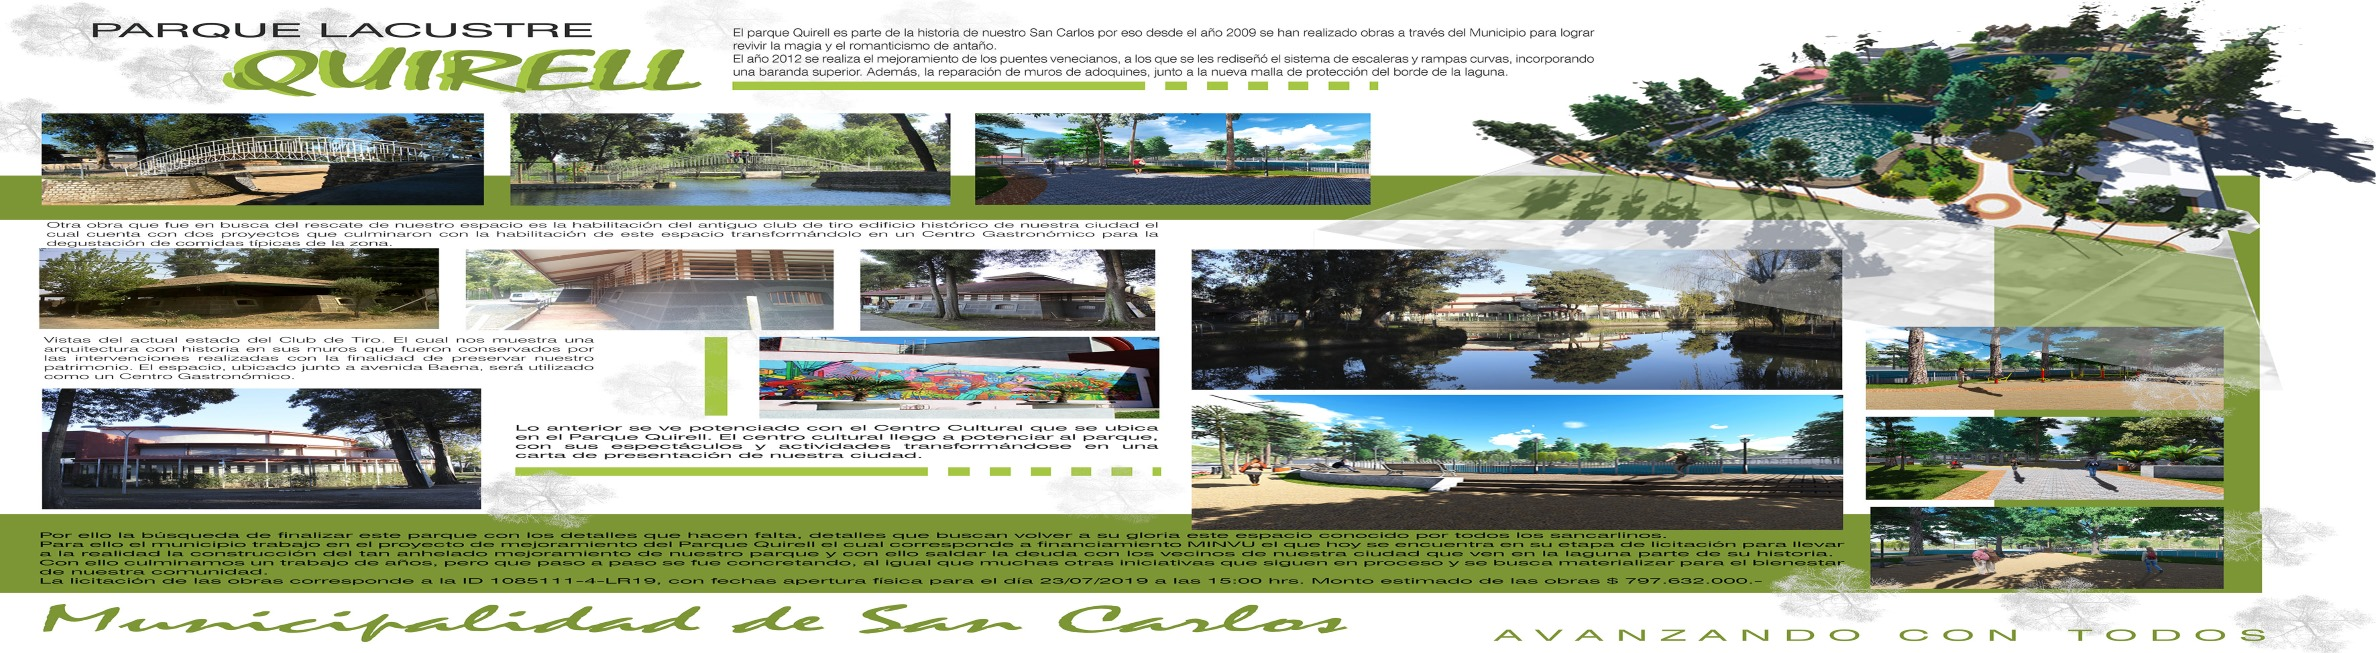 Proyecto_Quirell